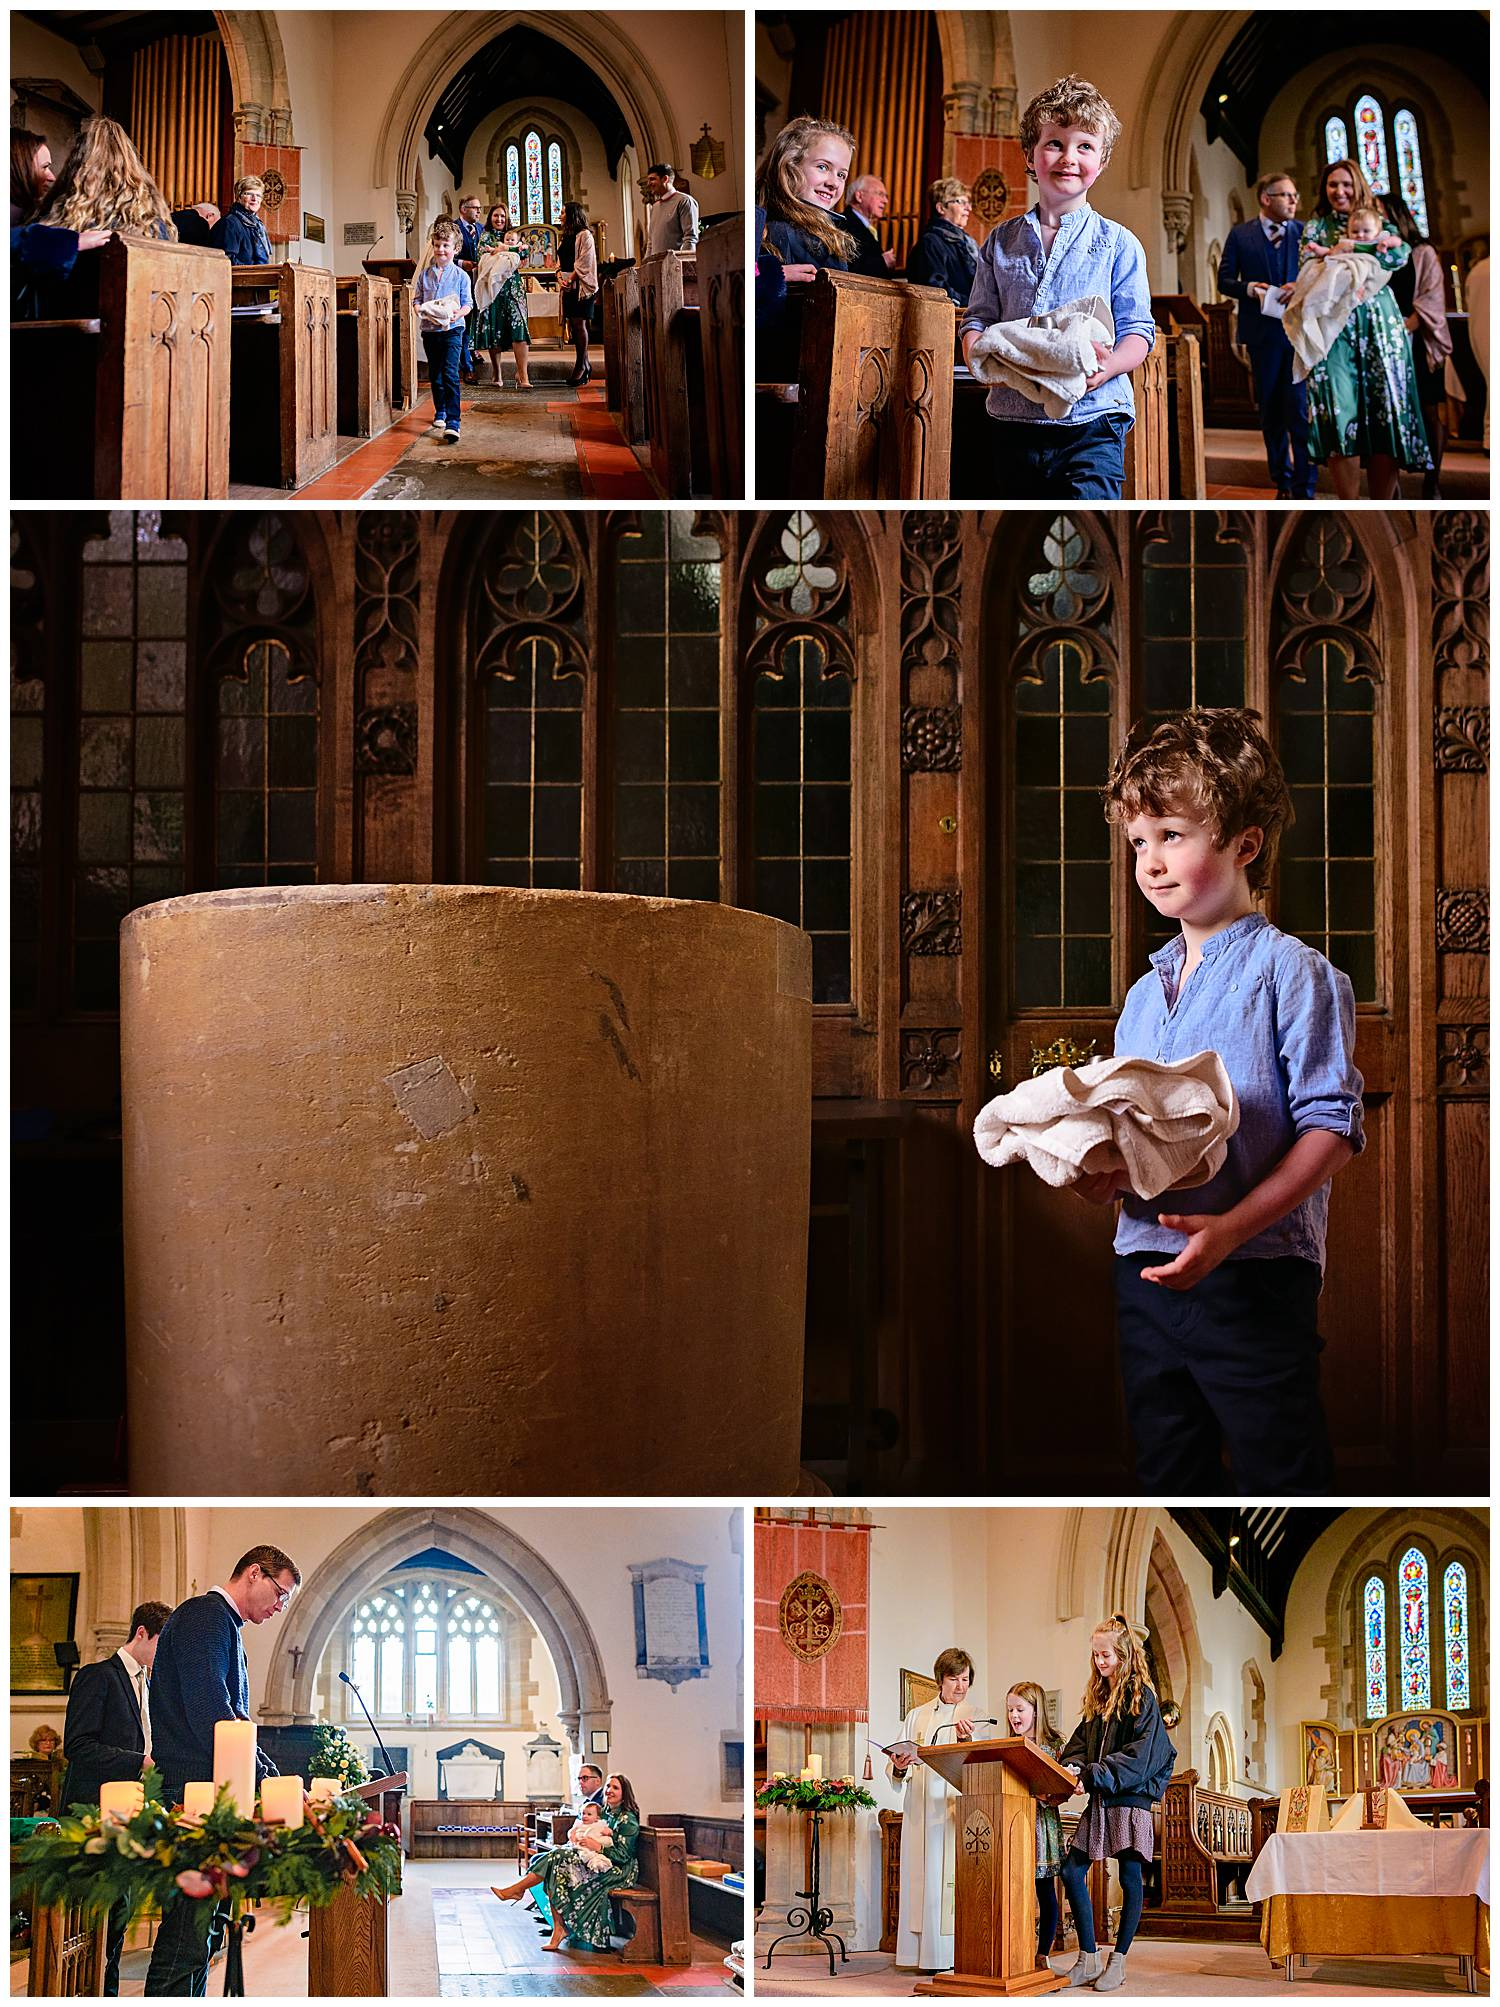 Collage of images of small boy carrying christening towel to the church font and cousins giving a reading